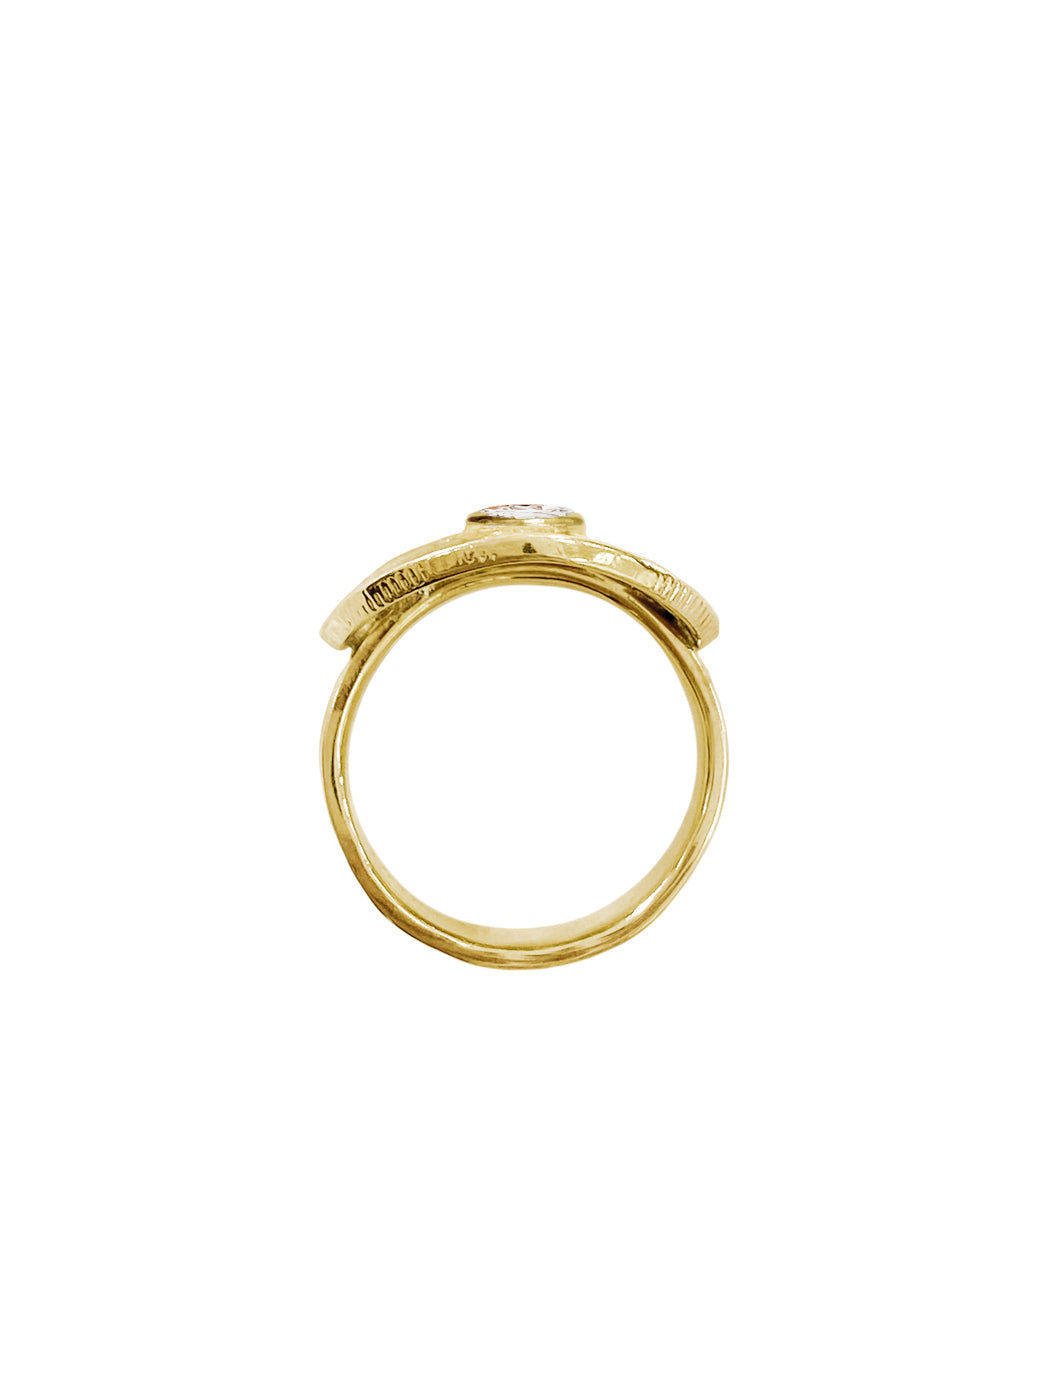 Fiorina Jewellery Gold PNG Bent Coin Ring Side View